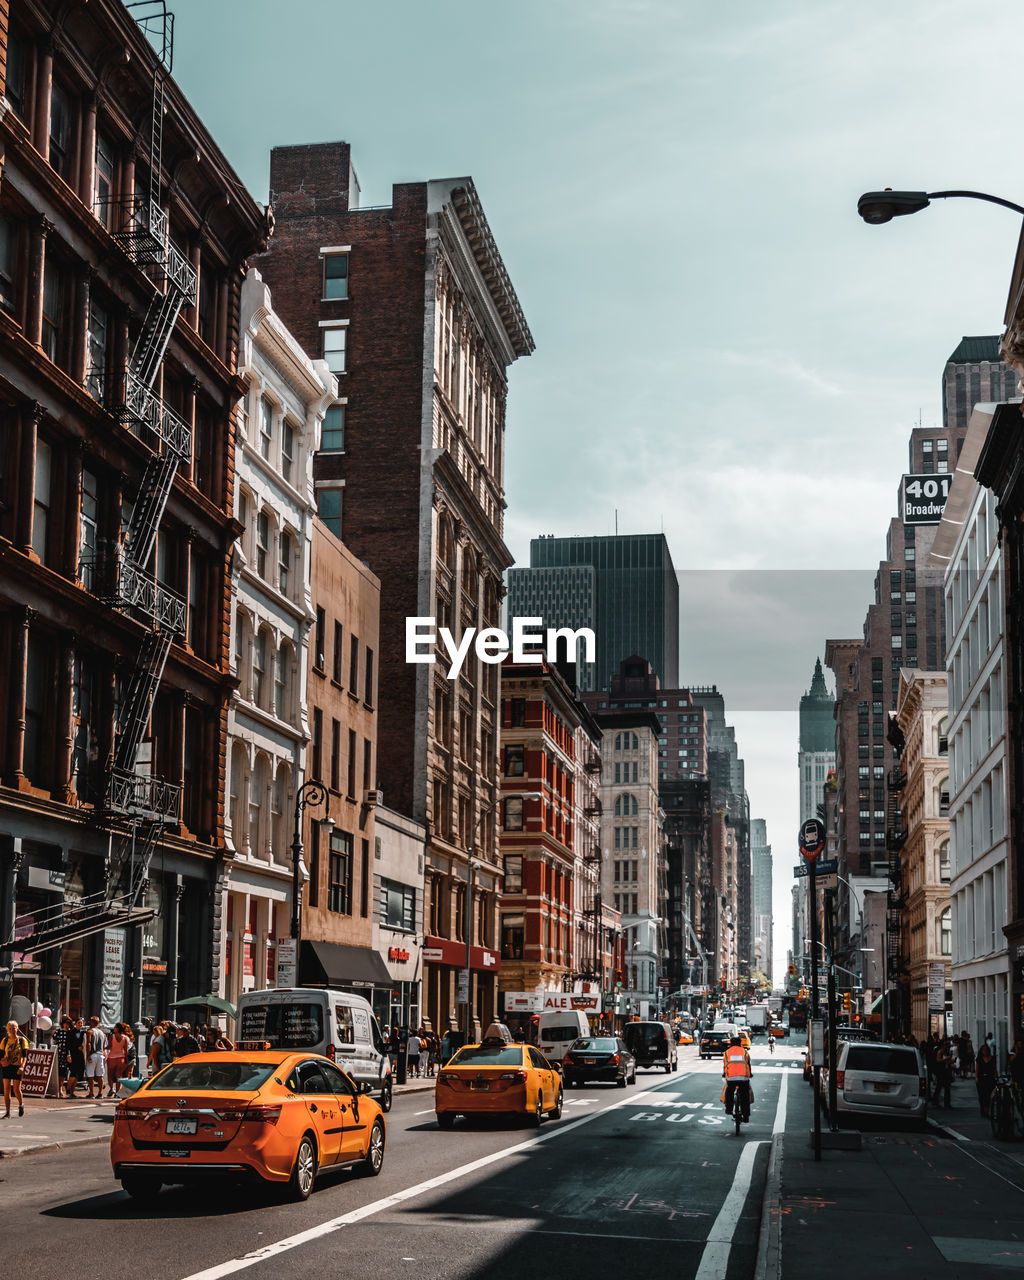 View of new yorks city street